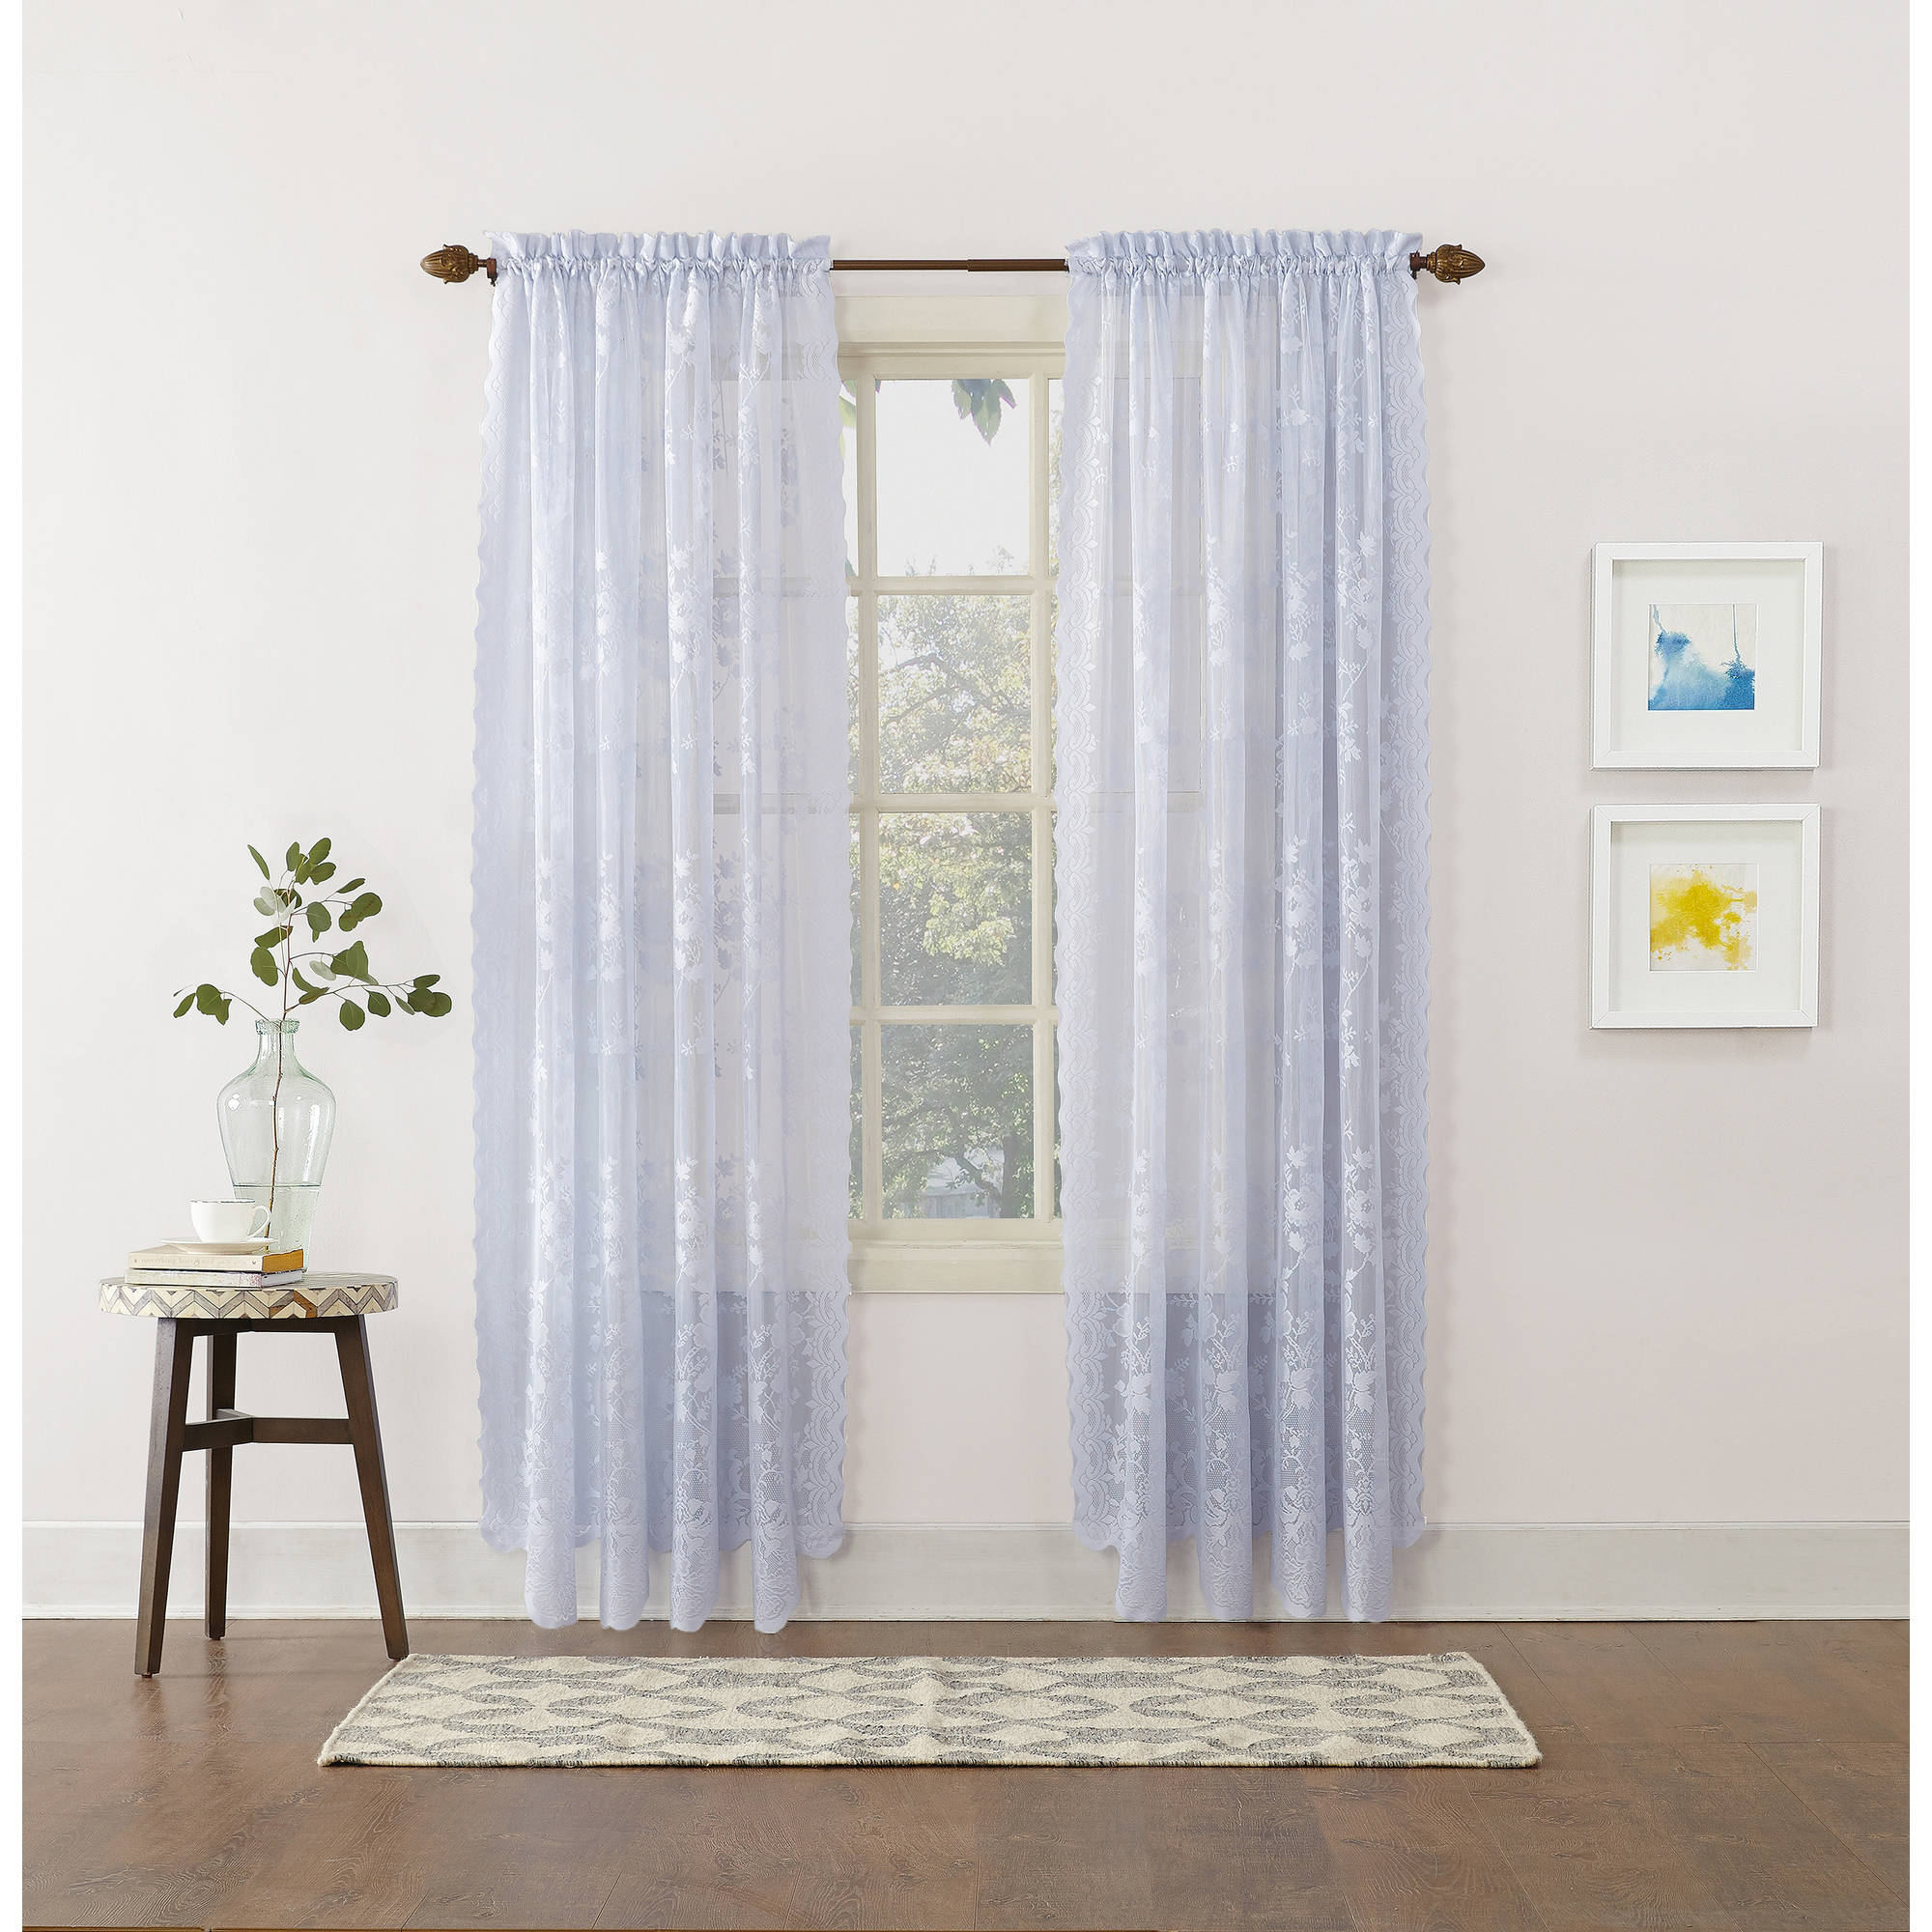 918 alison sheer lace curtain panel